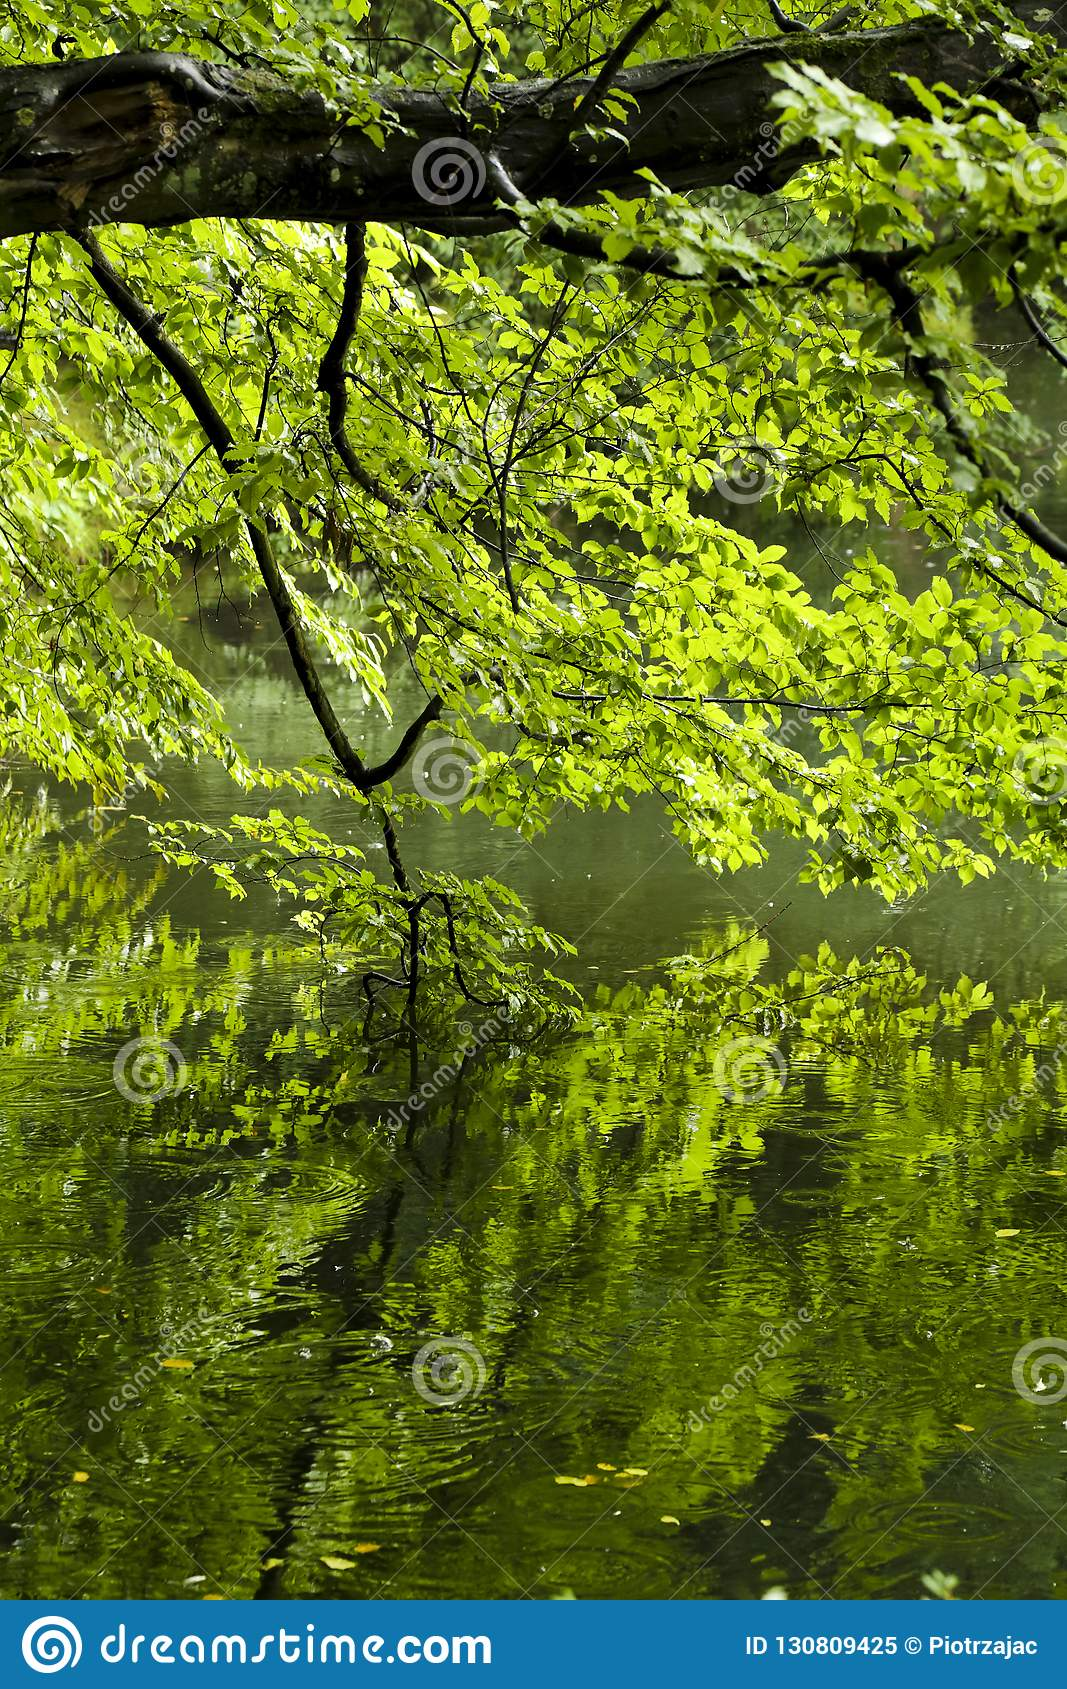 Tree in park reflected in pond